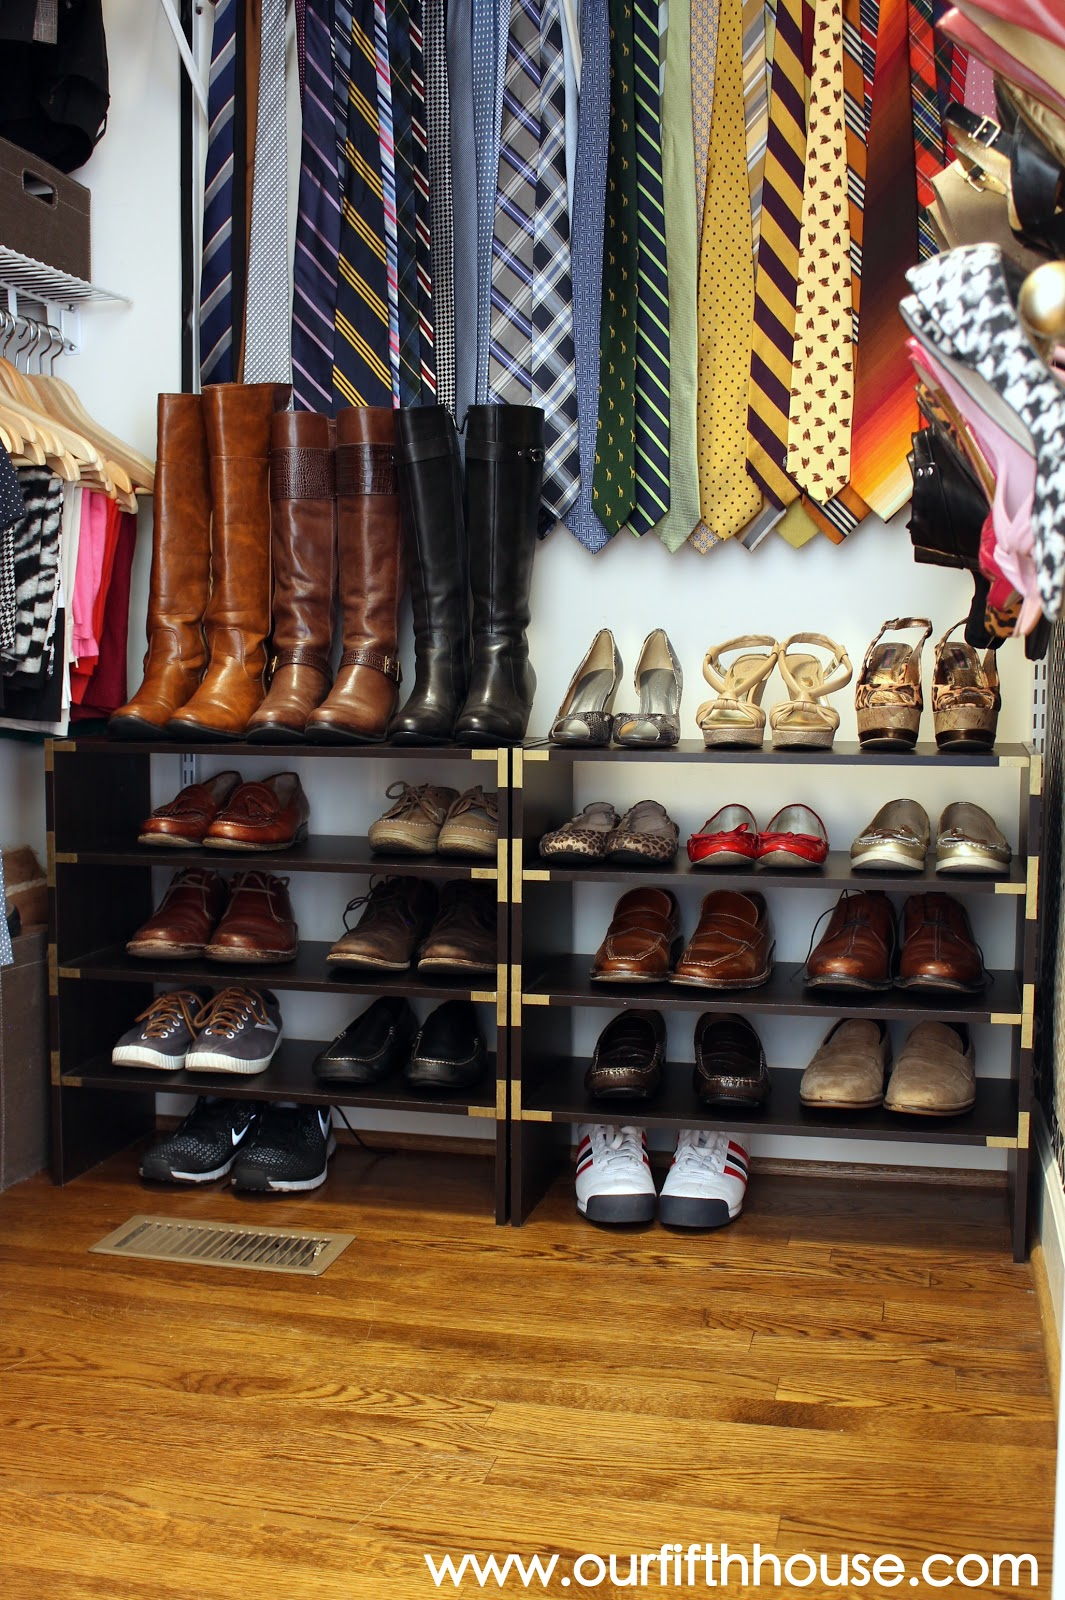 Our Fifth House Master Closet Organization Ideas